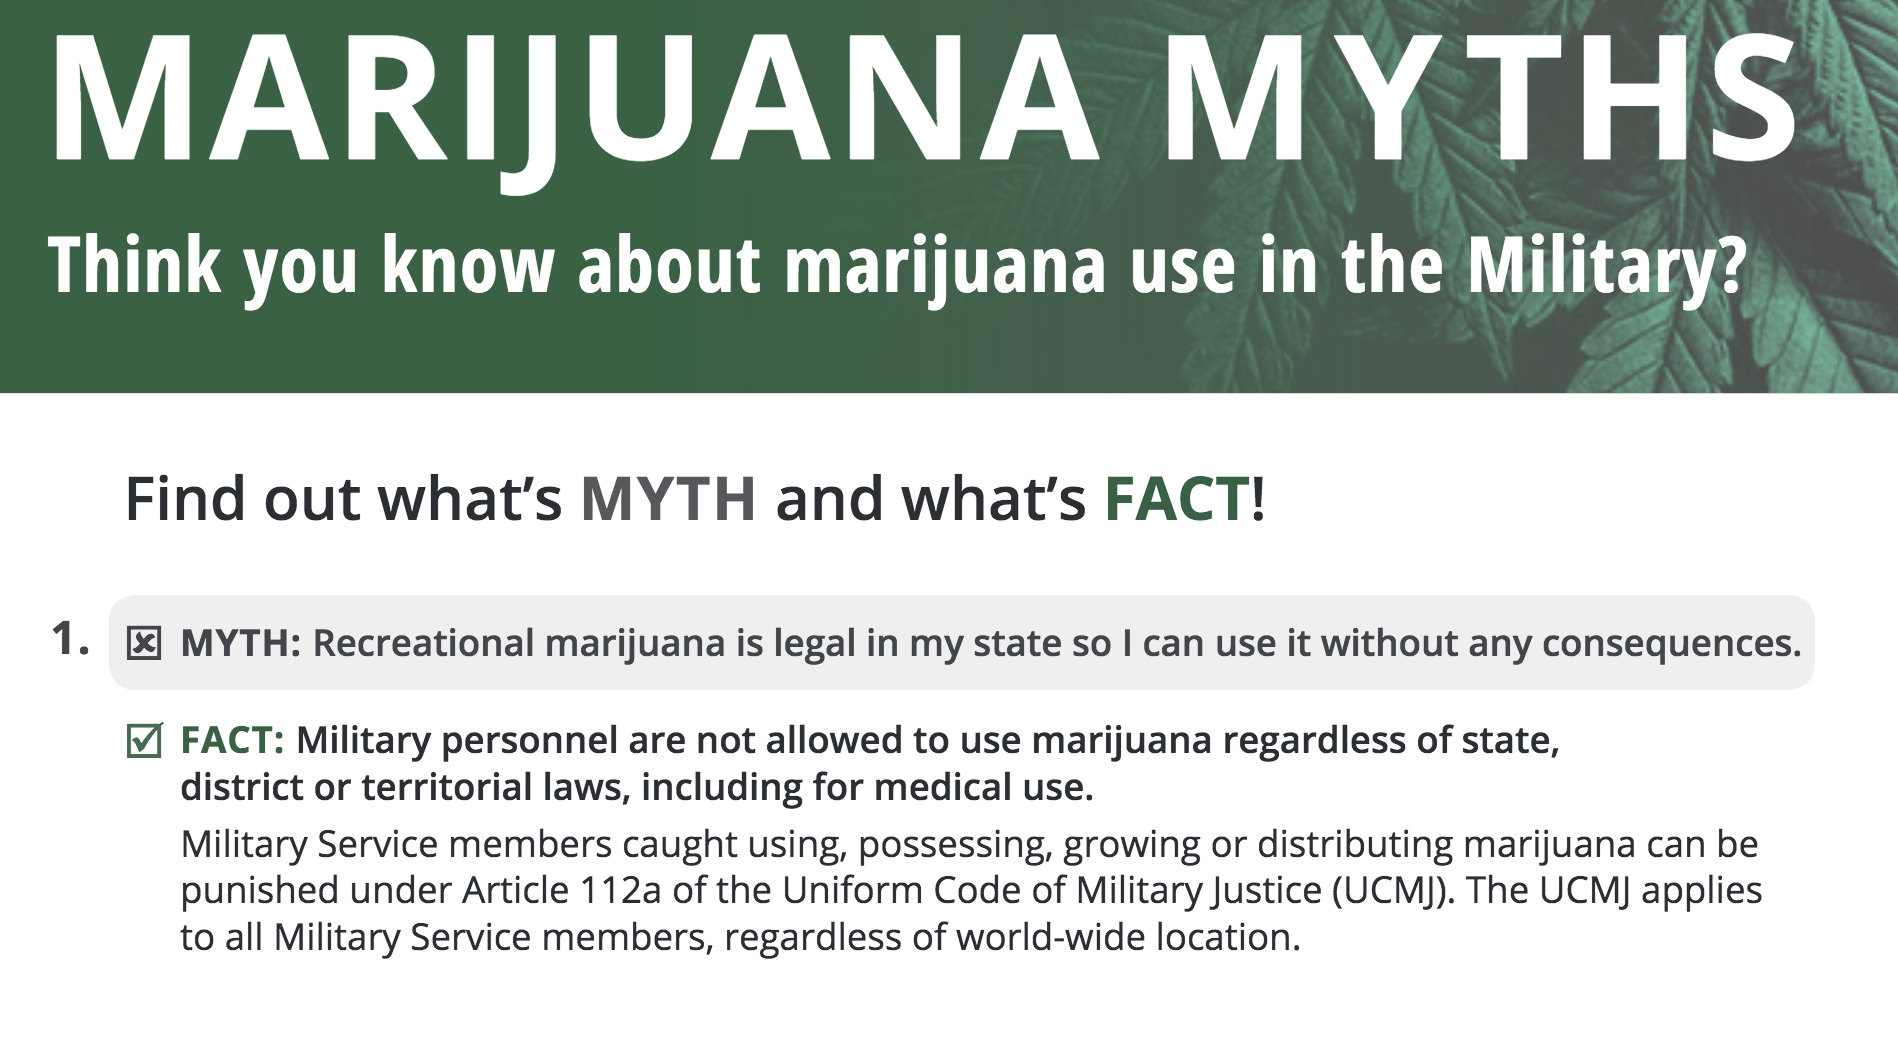 Marijuana Myths fact sheet